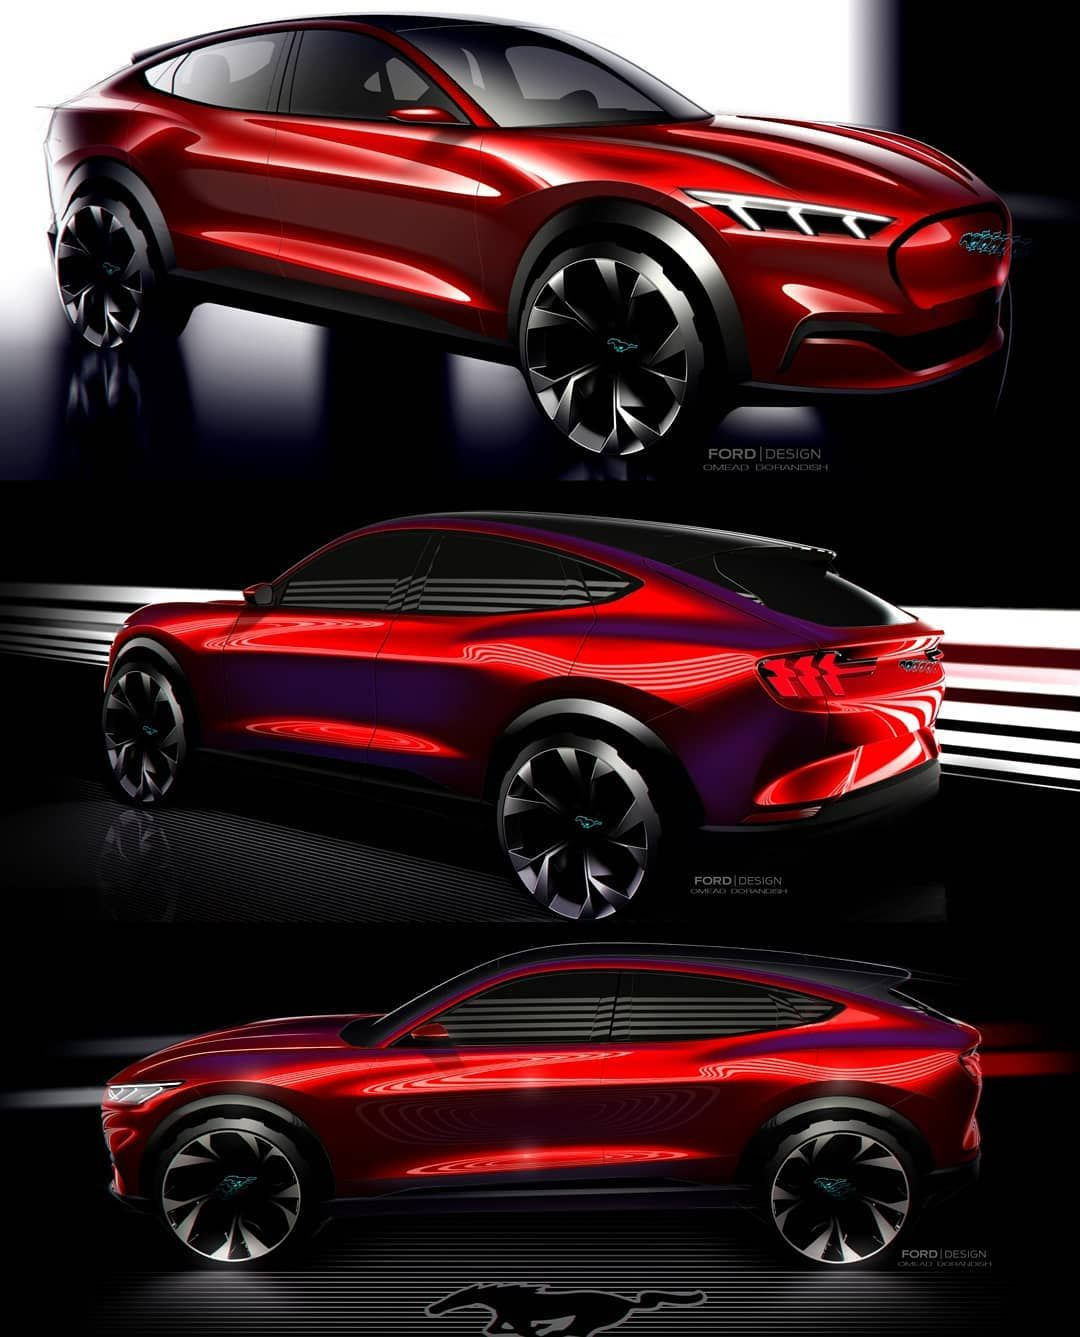 Design101trends On Instagram The Mustang Mach E Is Finally